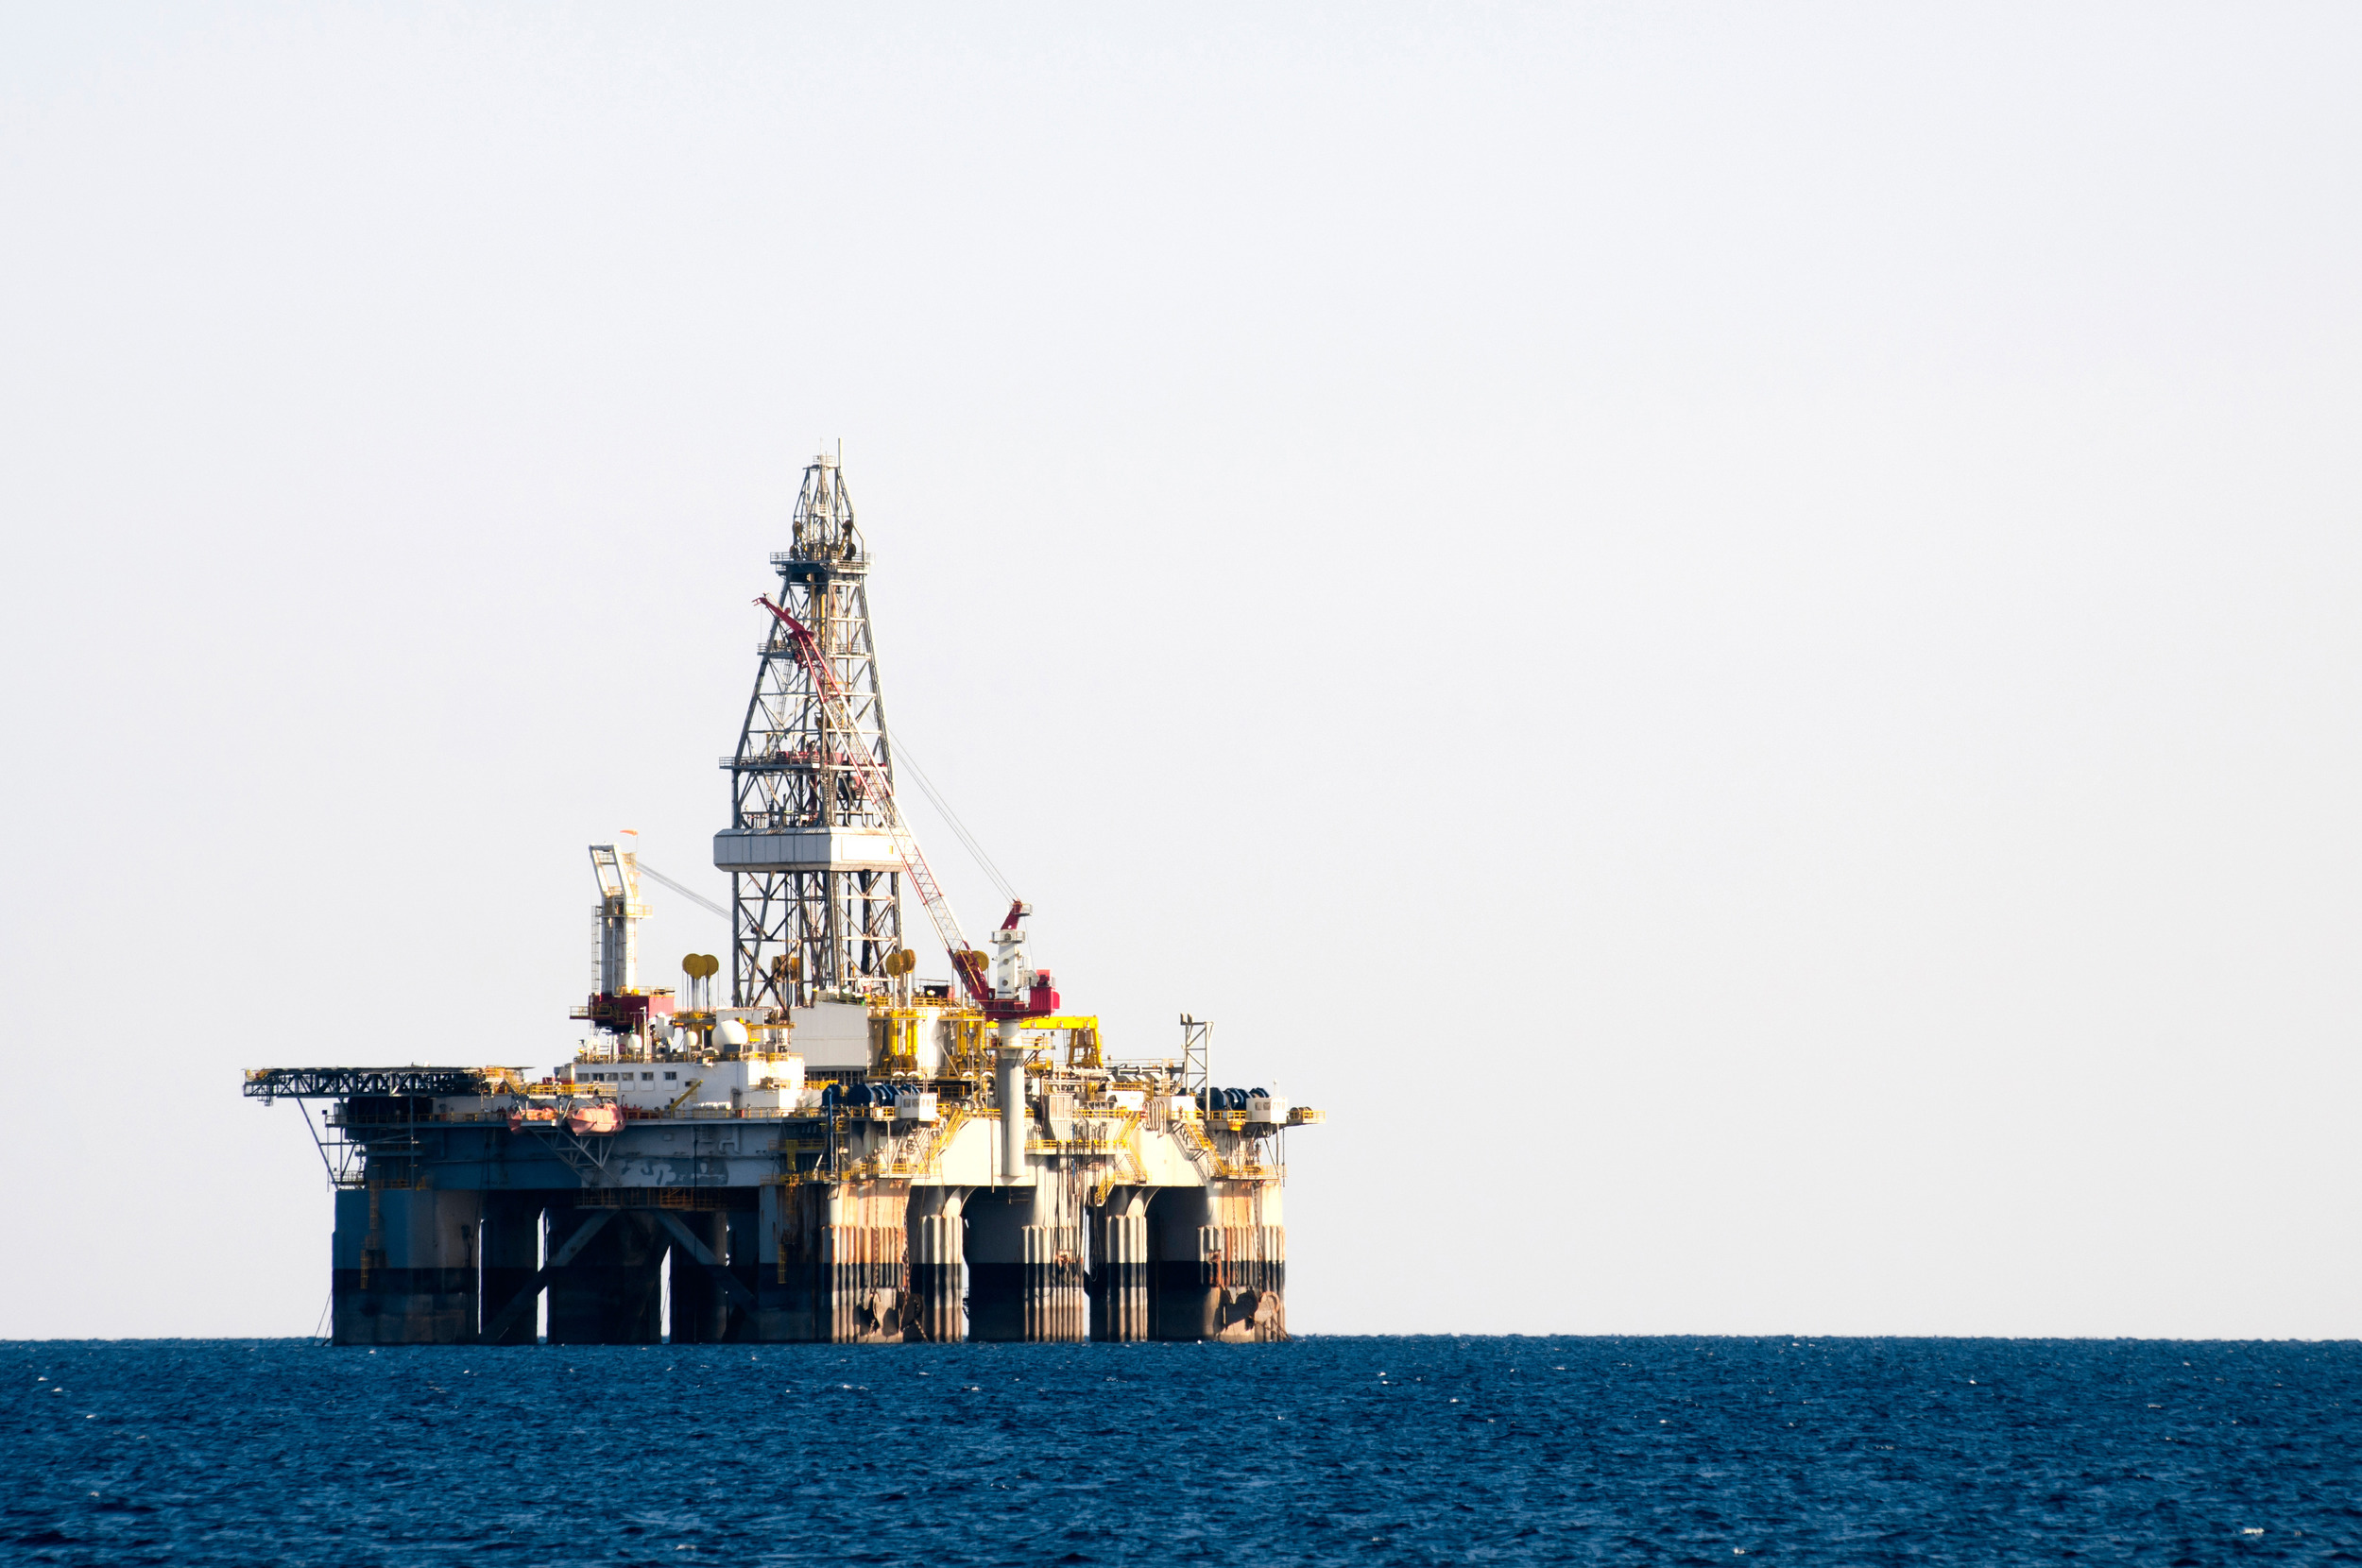 sea-oil-rig-drilling-platform_BP_graphicstock.jpg